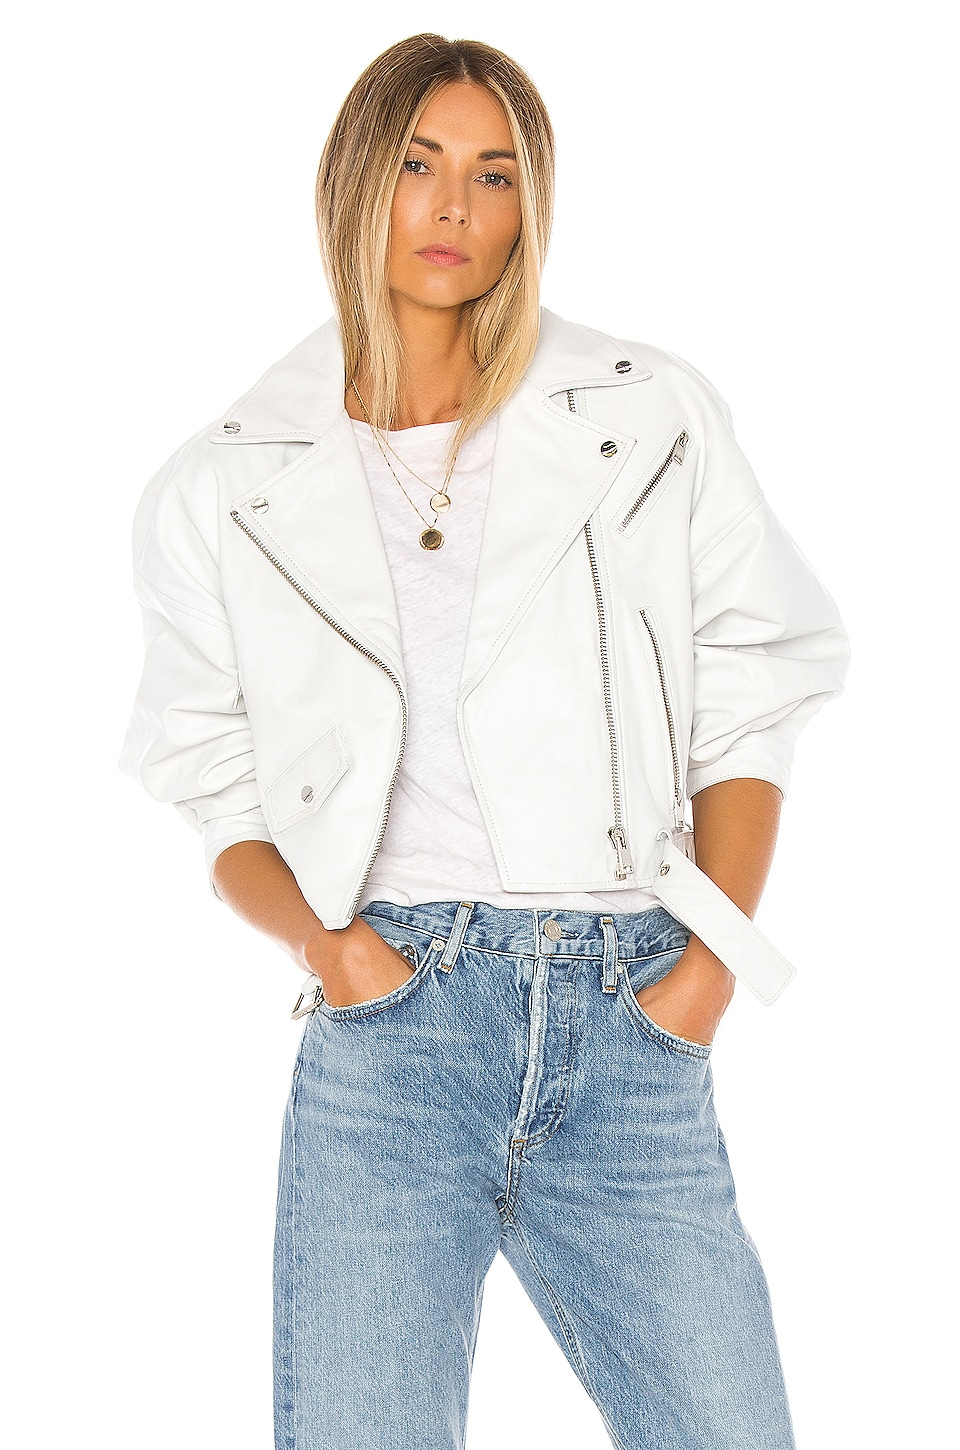 LAMARQUE X REVOLVE Dylan Jacket in White